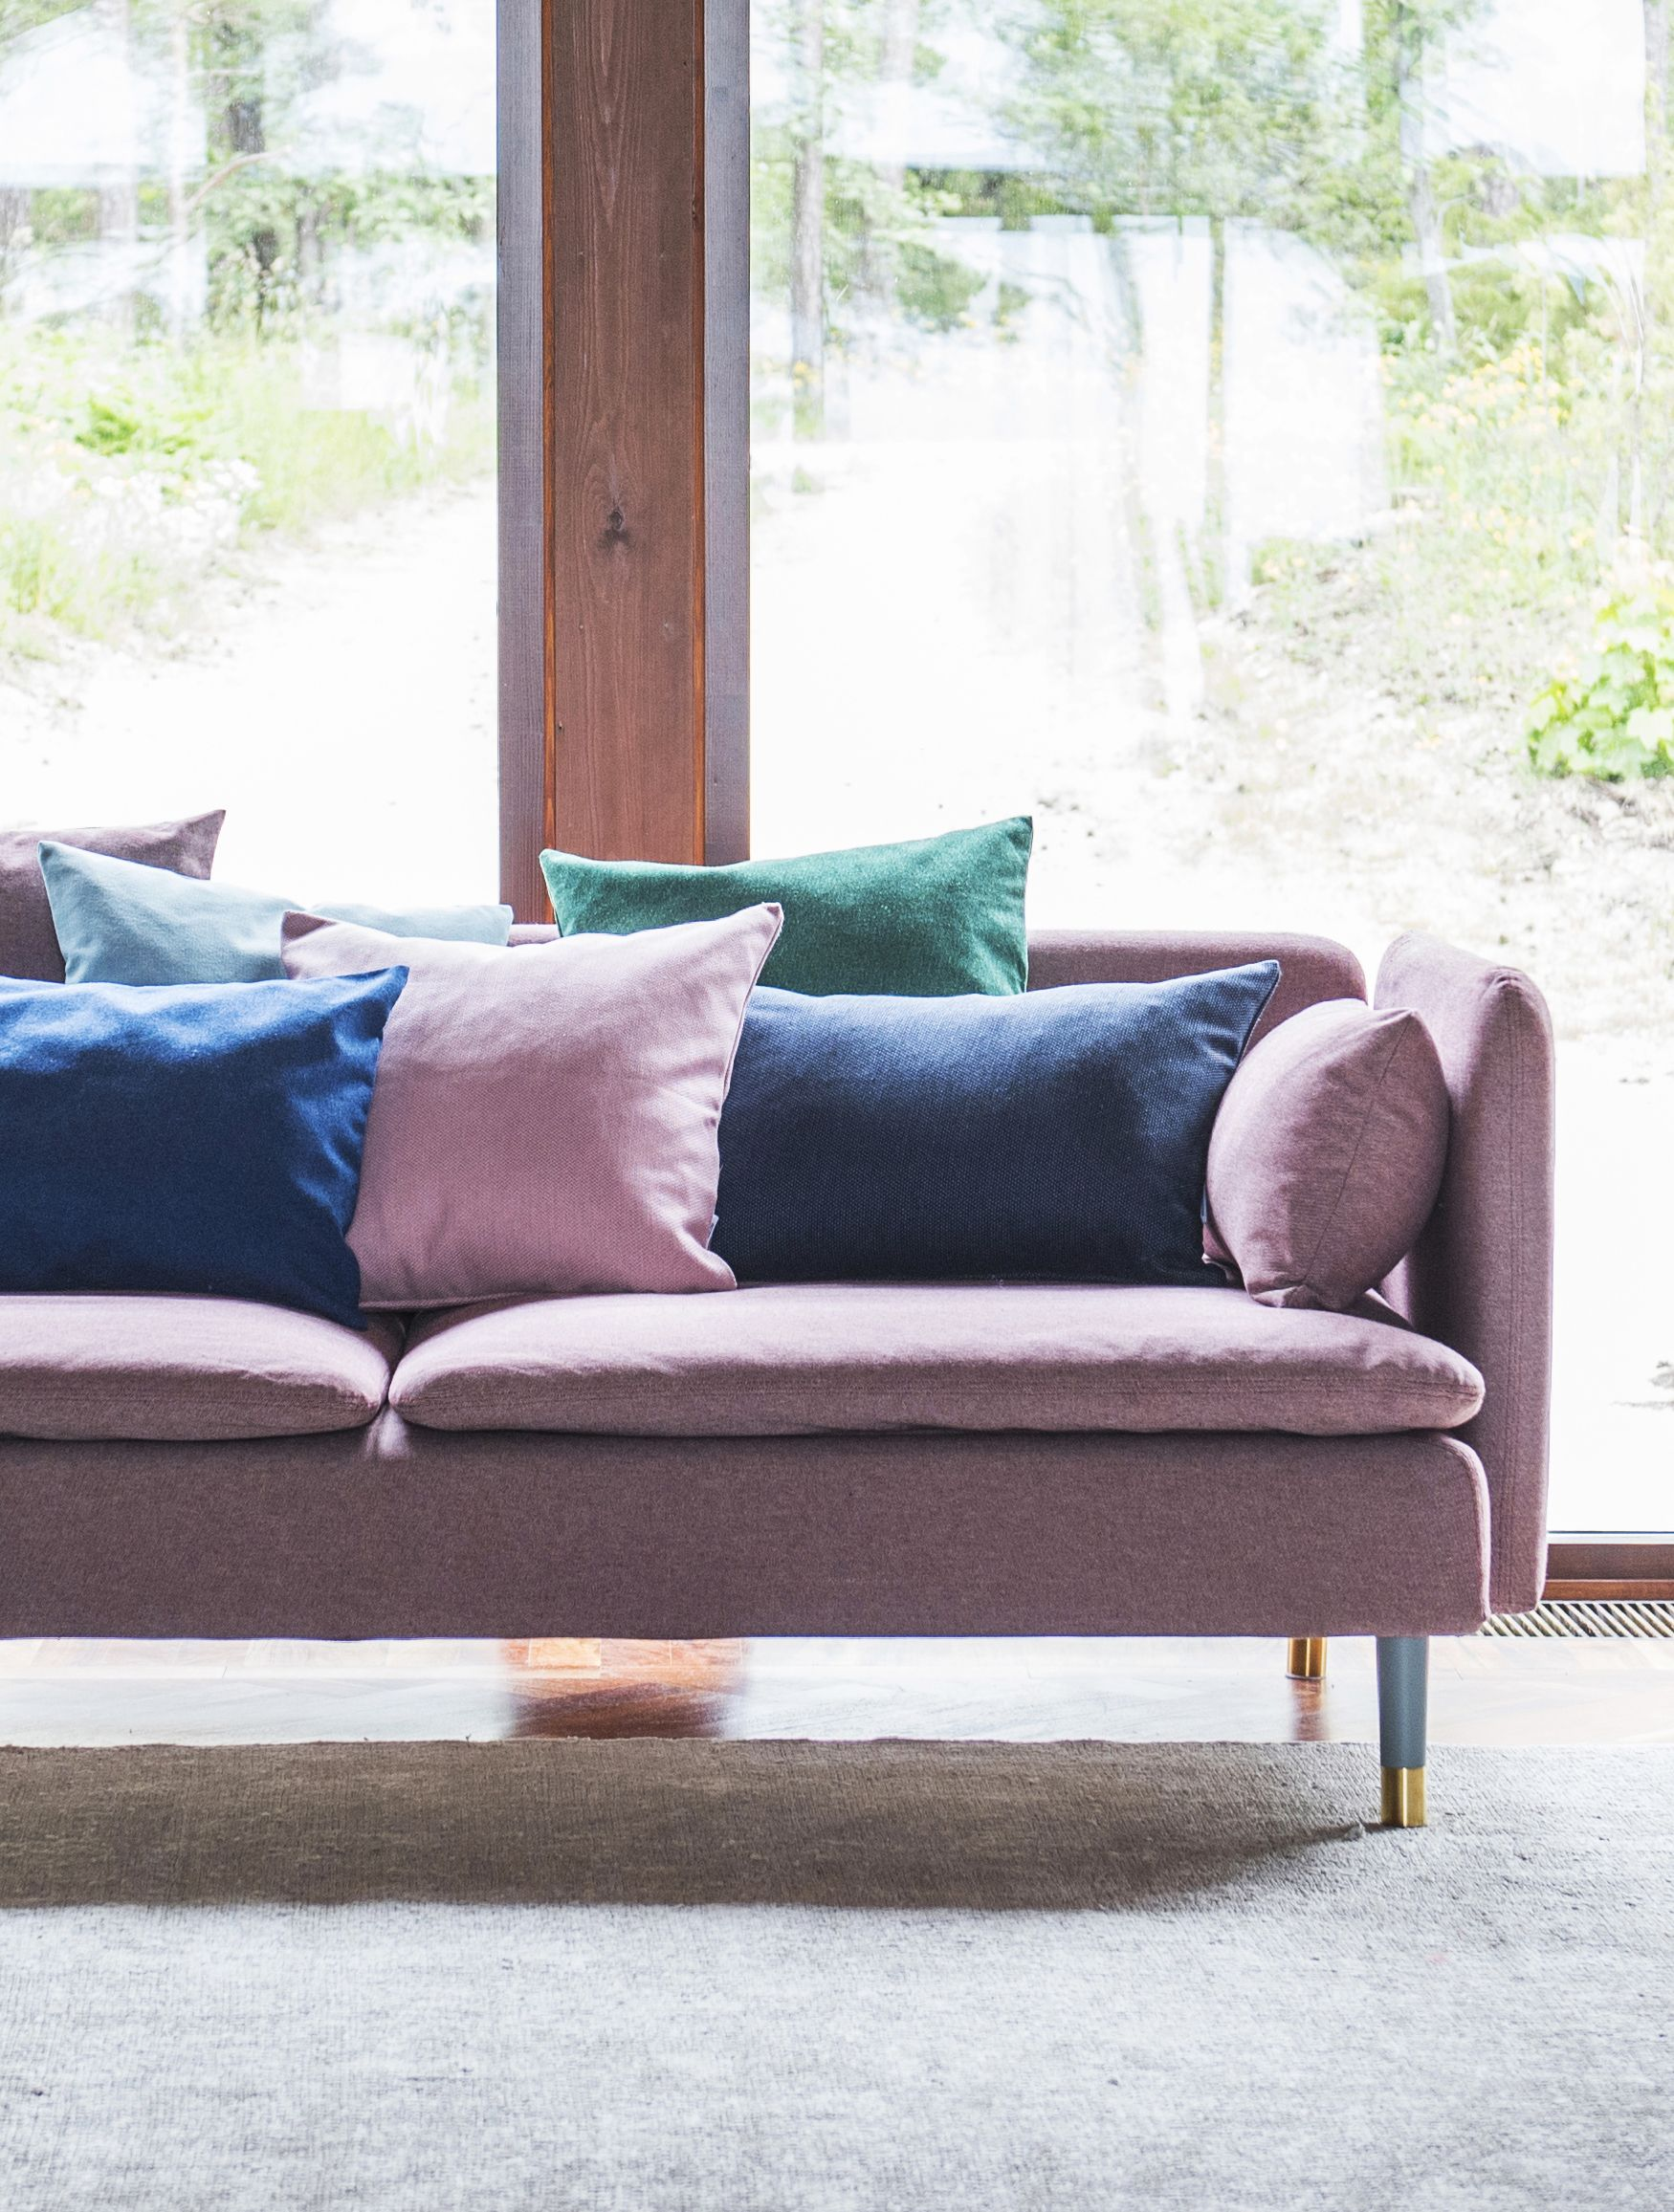 Think Pink Mid Century Modern House Huge Windows Pink Sofa With Multi Coloured Scatter Cushions Ikea Soderhamn Sofa With A Be Ikea Sofa Ikea Couch Sofa